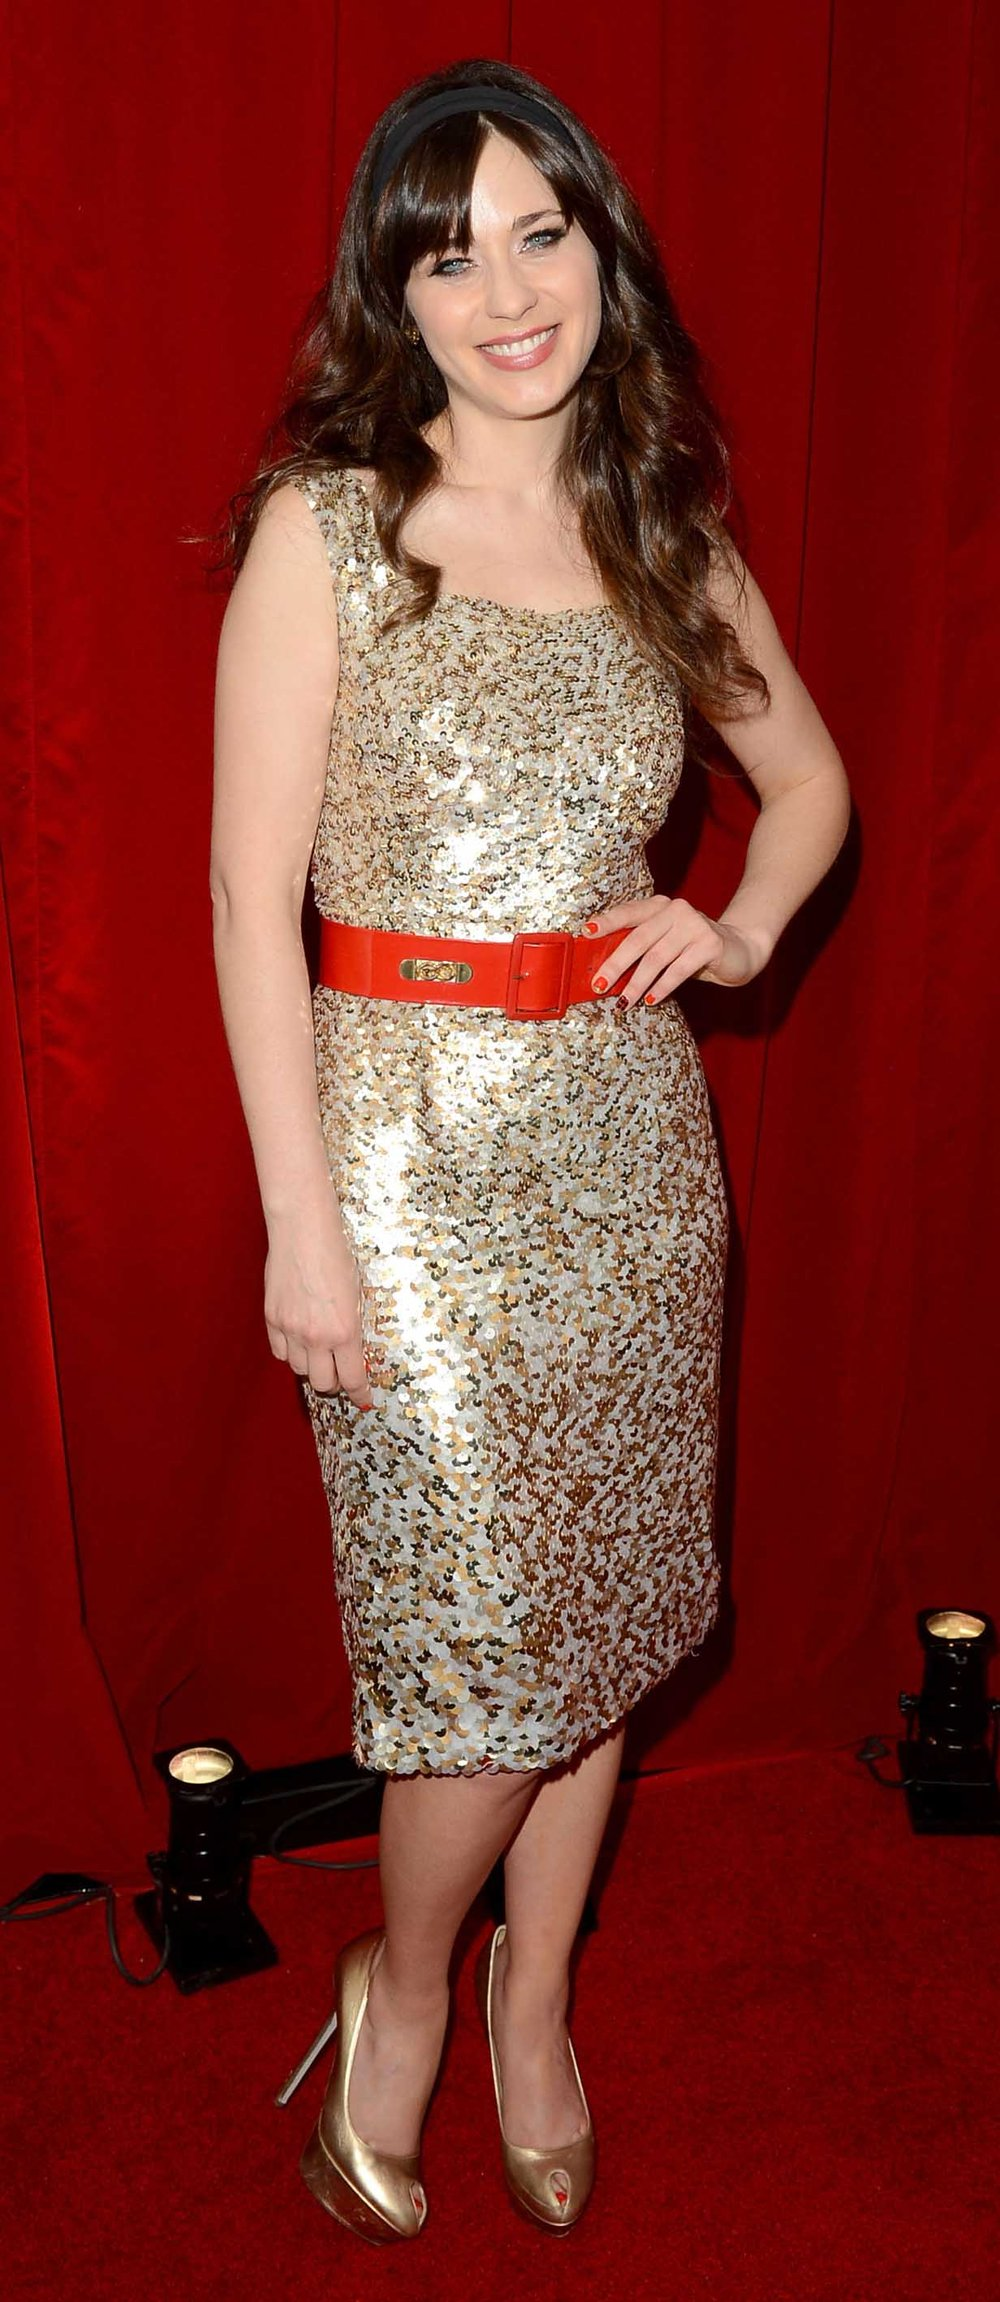 tan-dress-shift-sequin-belt-head-tan-shoe-pumps-zooeydeschanel-brun-spring-summer-dinner.jpg